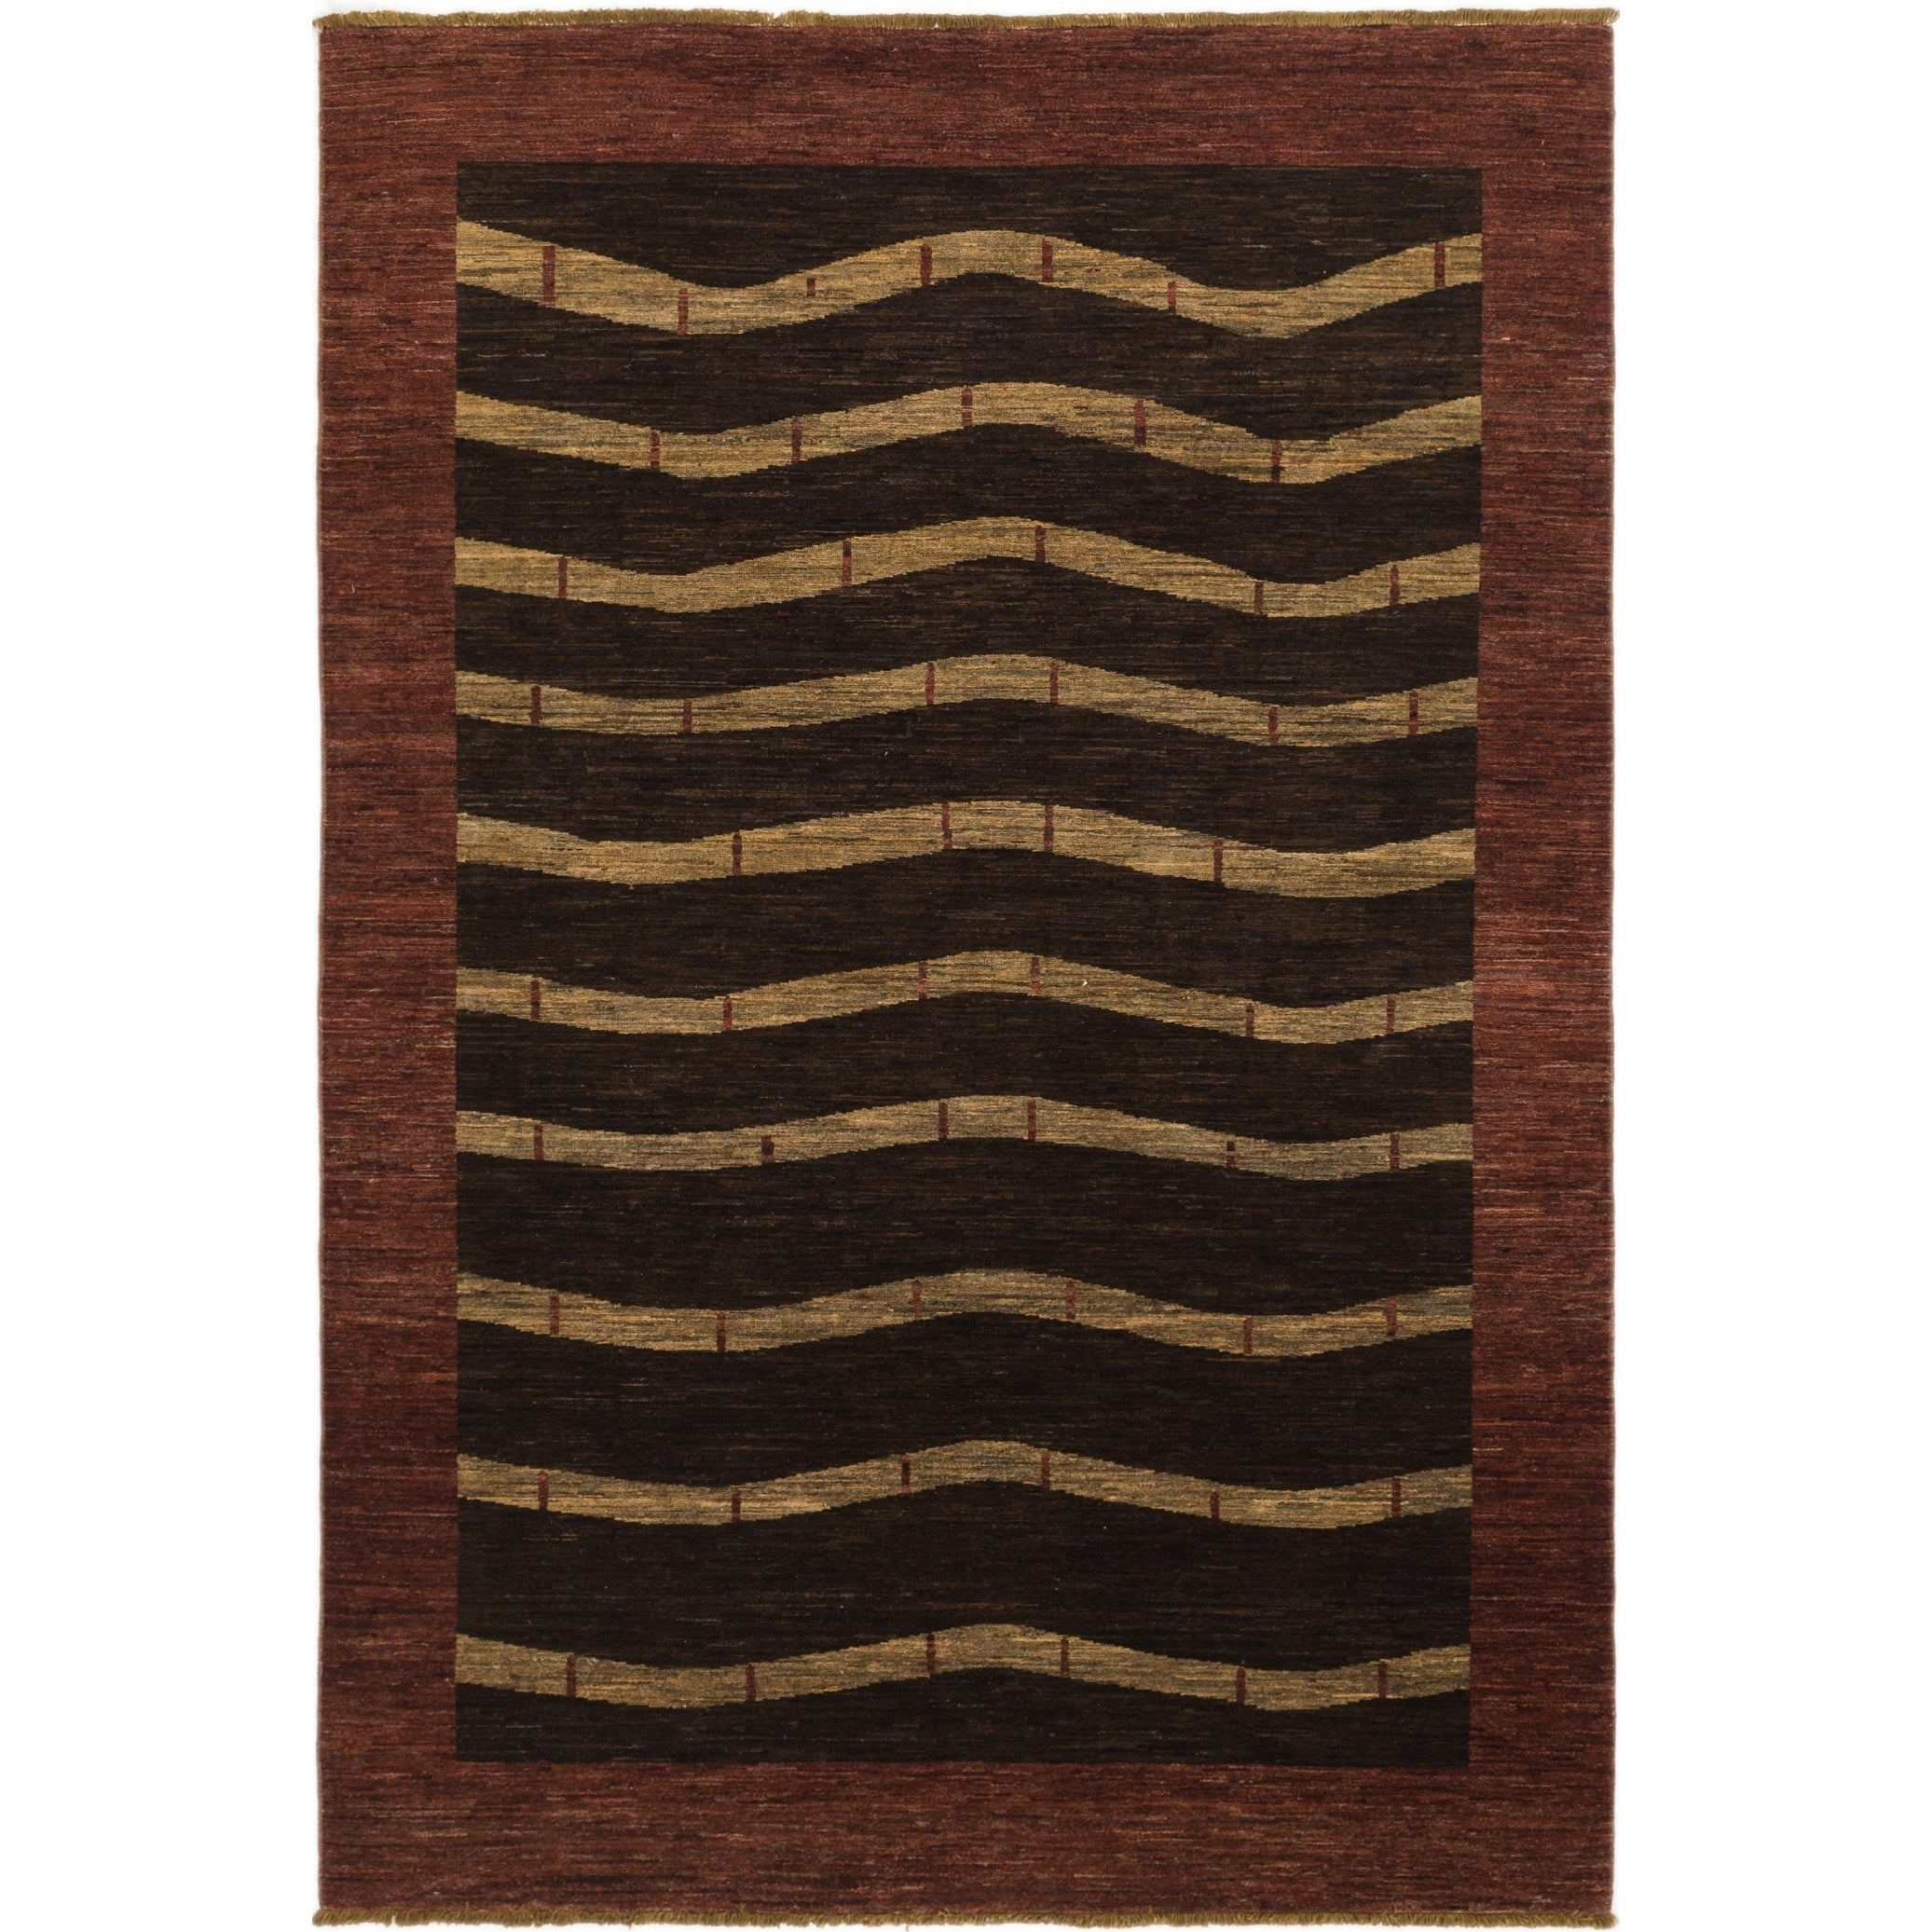 Hand Knotted Kashkuli Gabbeh Wool Area Rug - 6 x 9 (Brown - 6 x 9)